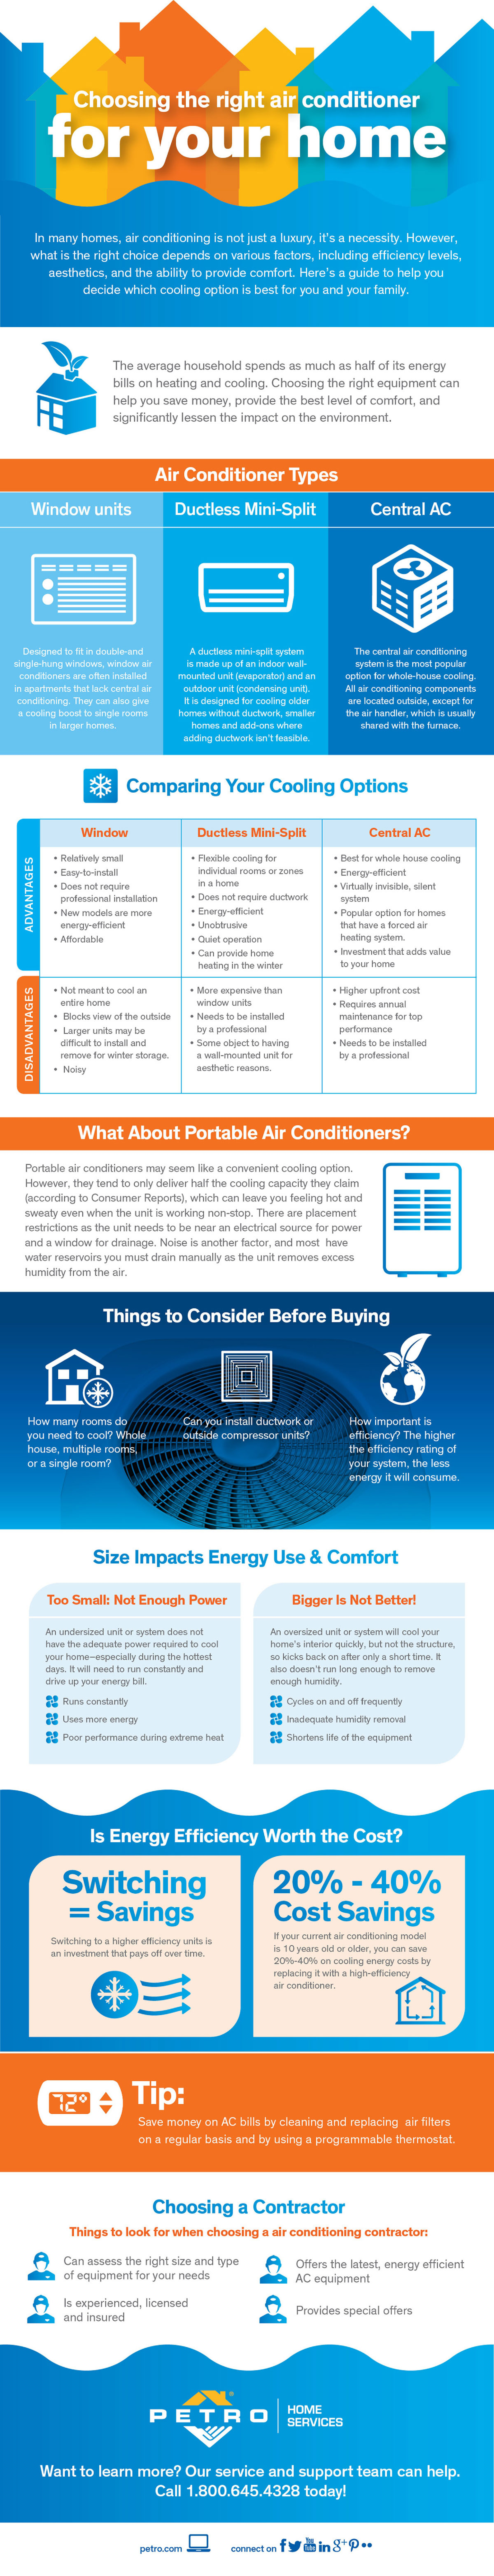 Choosing And Maintaining Your Ac Unit Shouldn T Be A